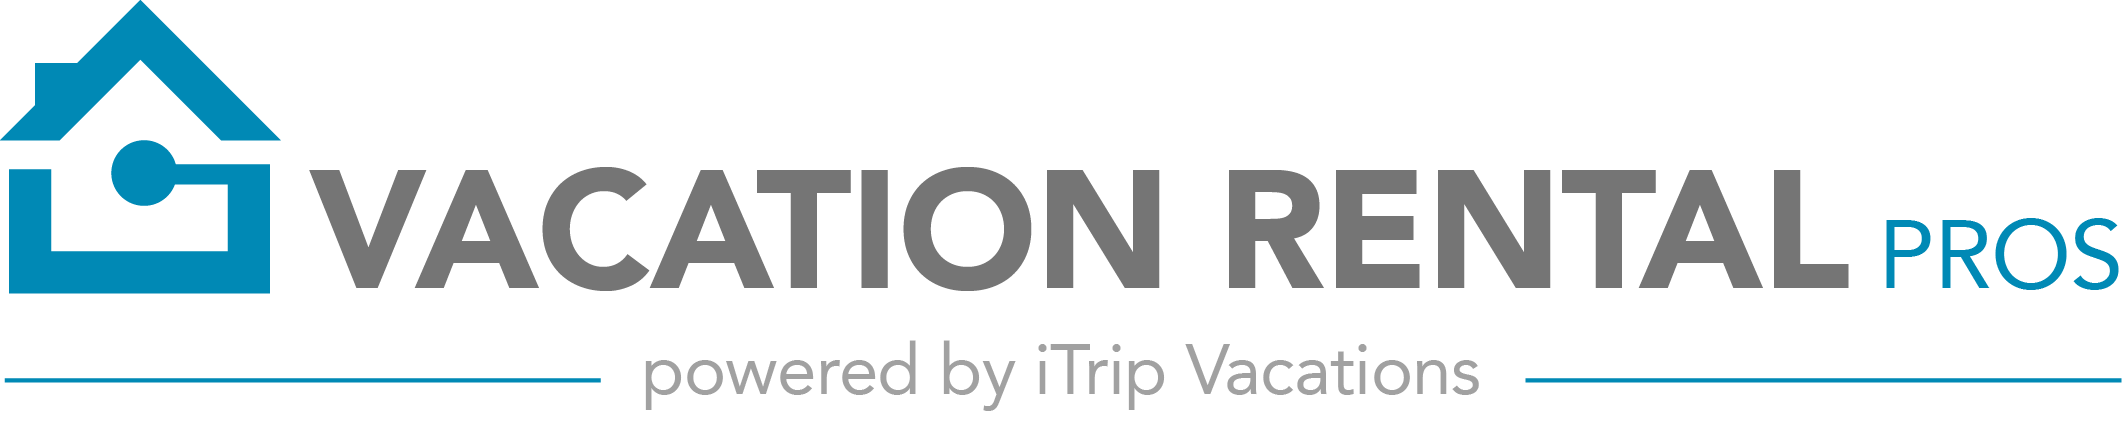 Tips, Tricks and Advice for Vacation Rental Owners